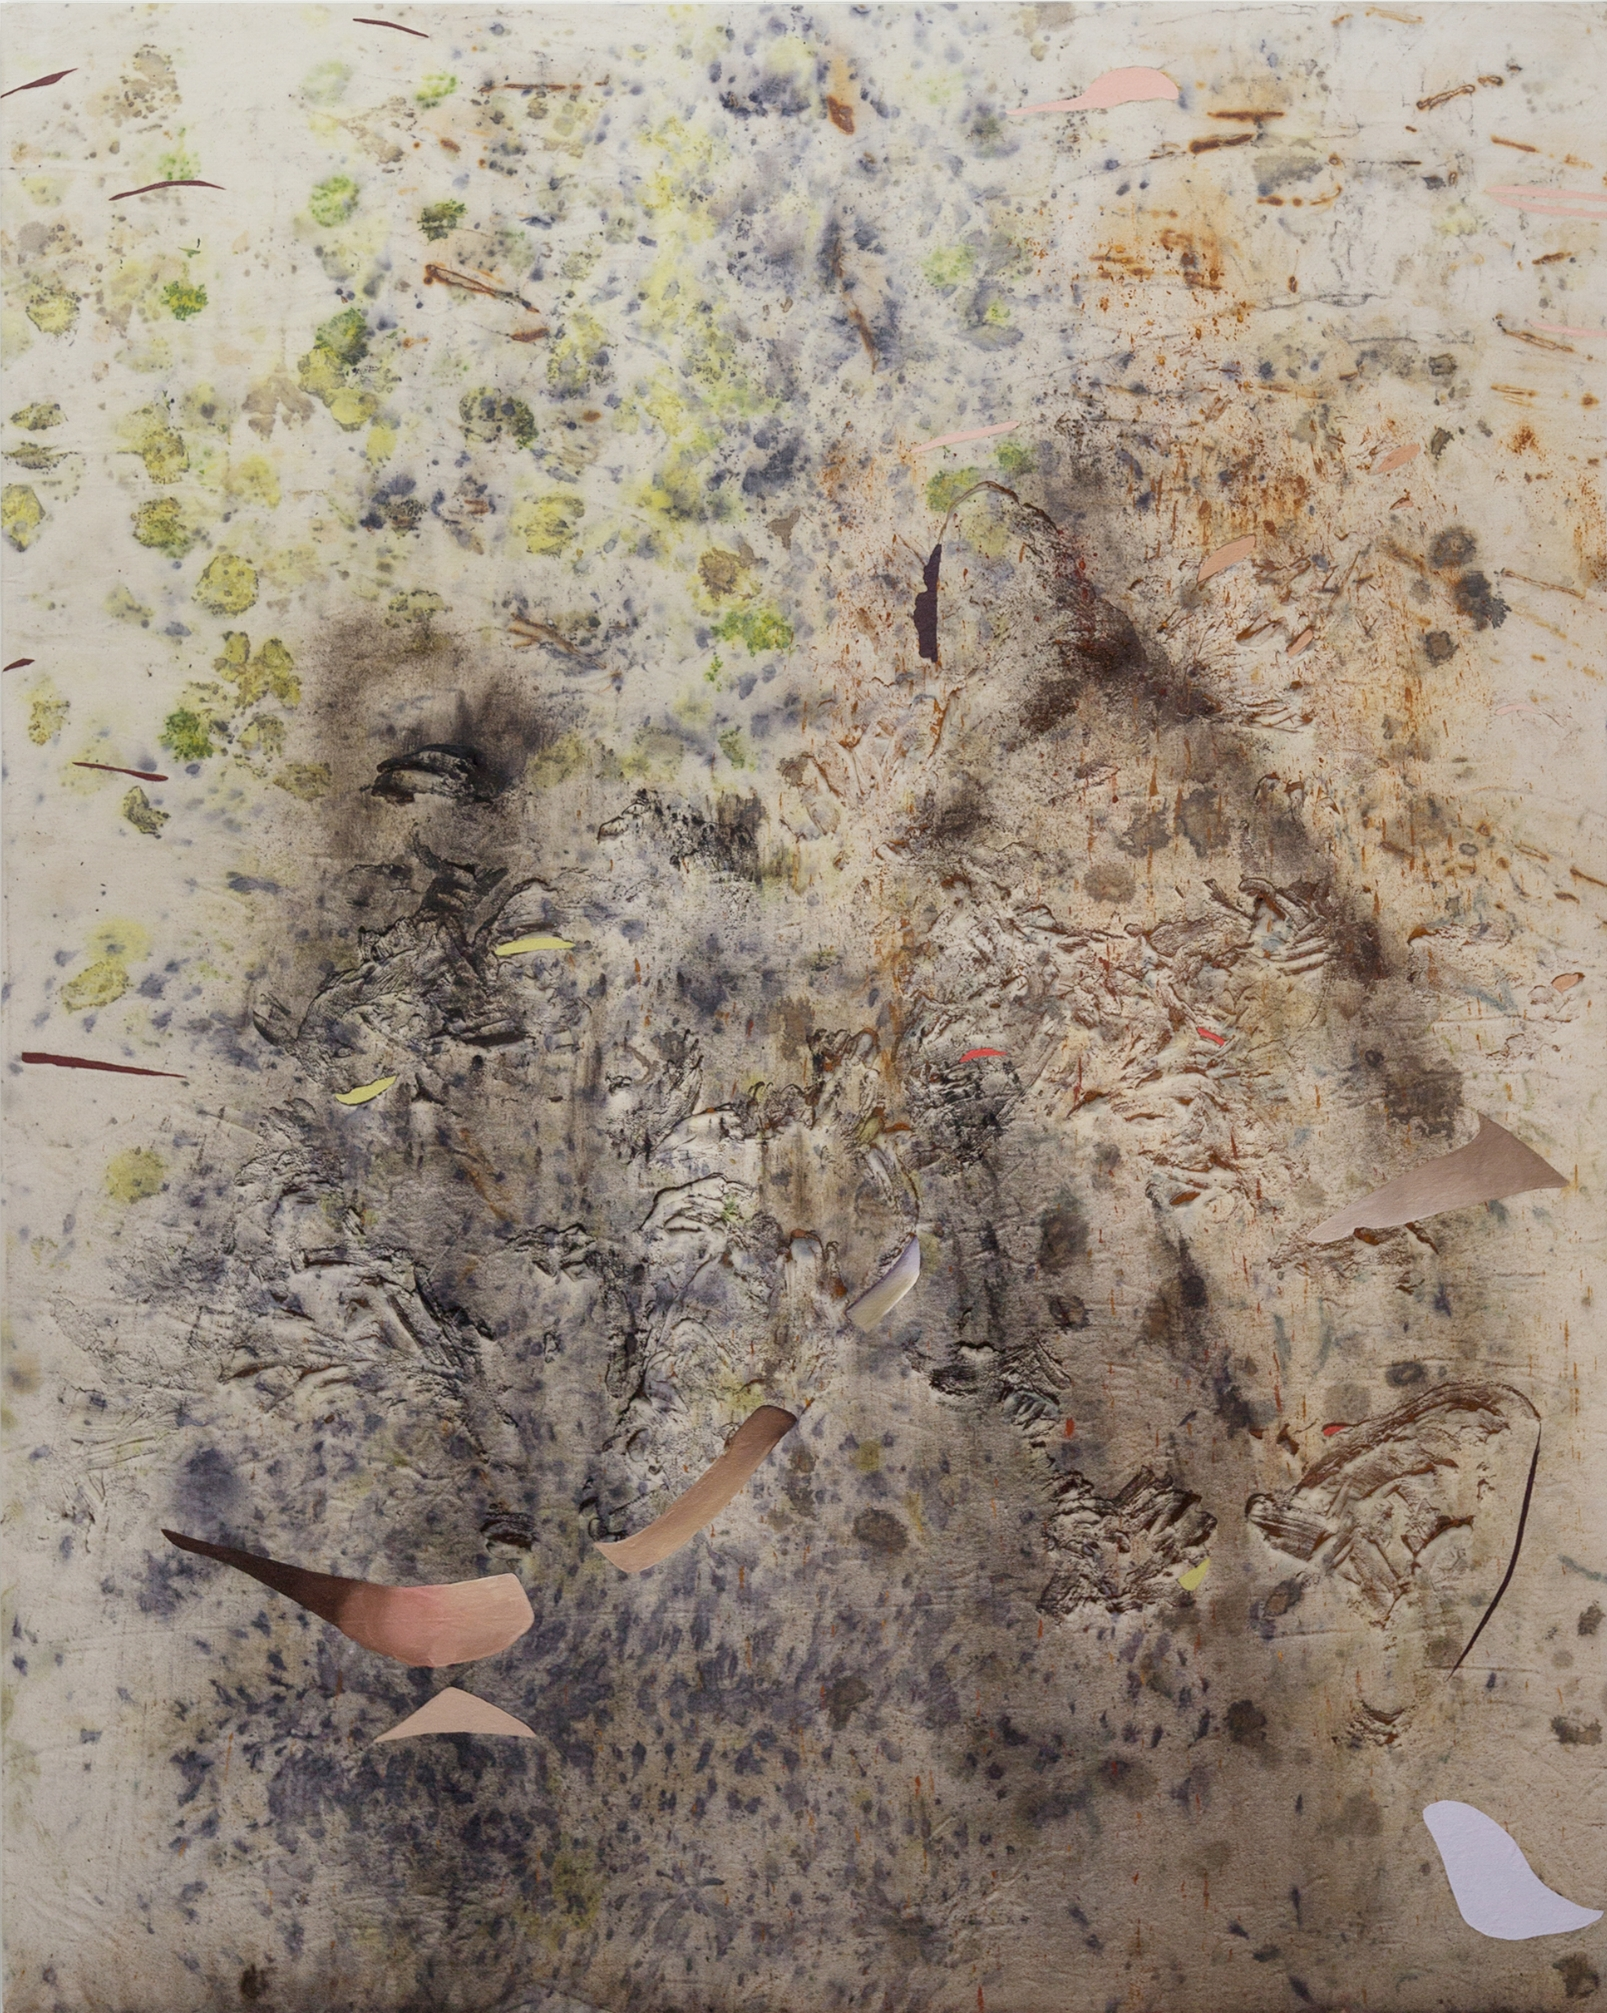 Rose Fossils, Cold Wax Medium, Oil, Raw Pigments, Sand, Red Earth, and Various Plant Materials (including Acorns, Avocado Pits, Ferns, Sumac Berries, Rose Petals, Onion Skins, Tansy Flower, Wildflowers, and Rusty Nails) on Canvas, 5x4 feet, 2018